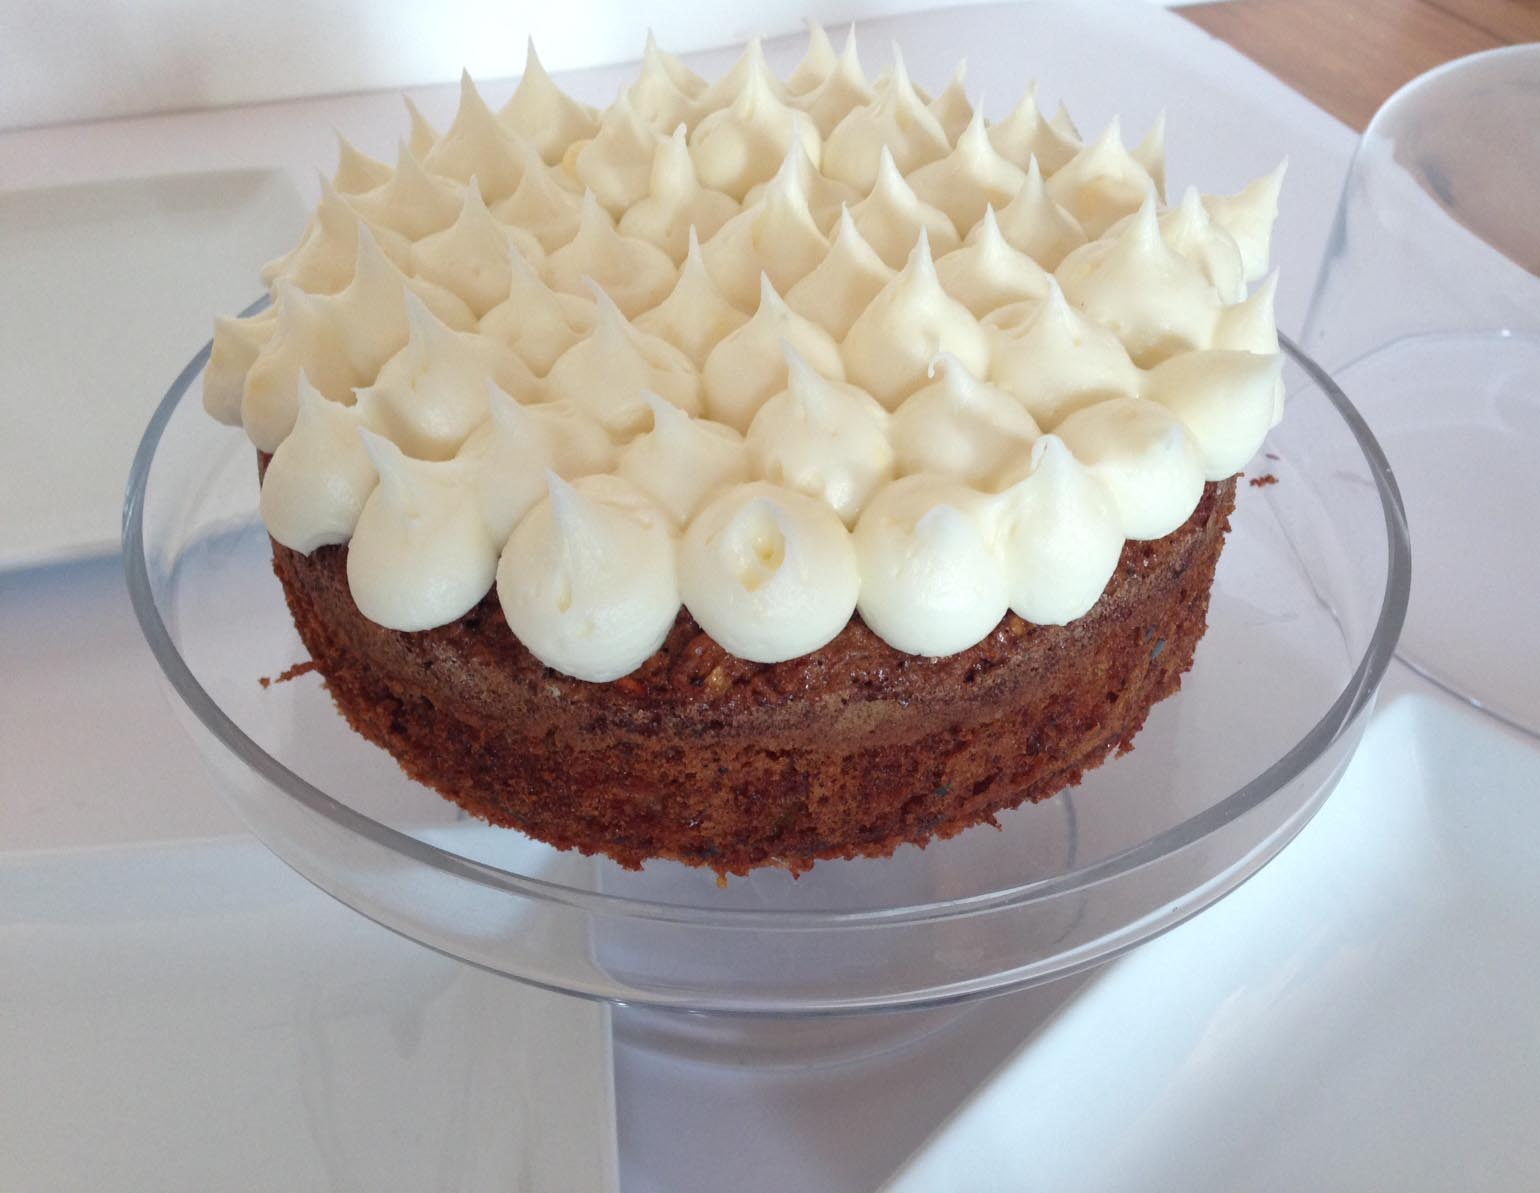 meg-made: Gluten Free Carrot Cake with Cream Cheese Frosting/Icing